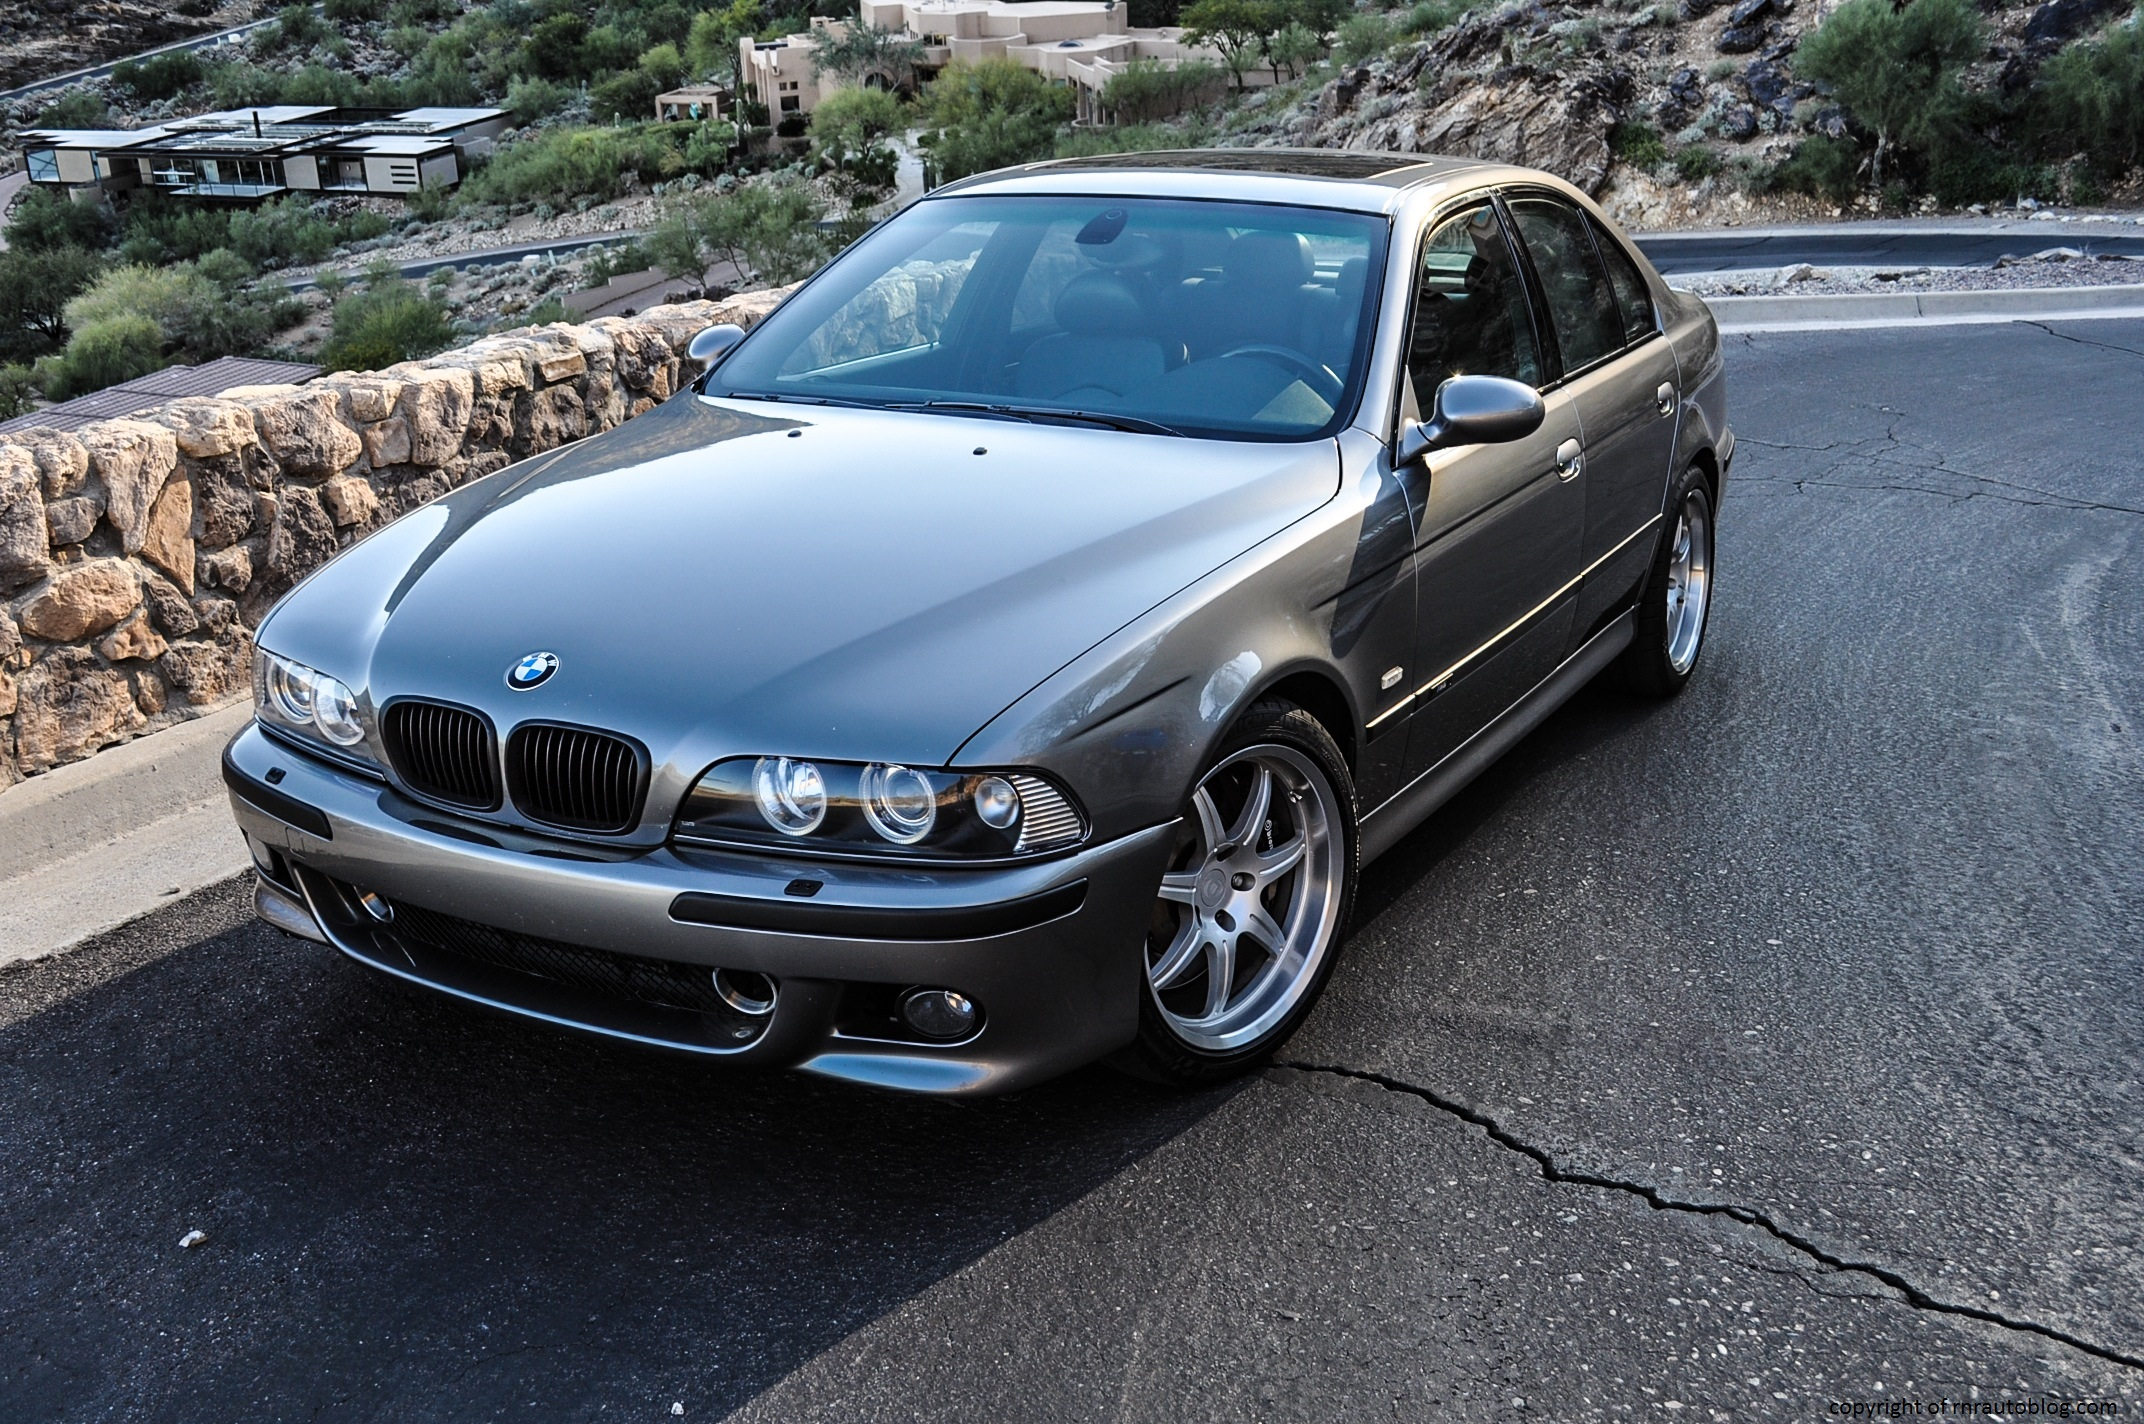 2002 Bmw M5 Dinan Edition Review Rnr Automotive Blog